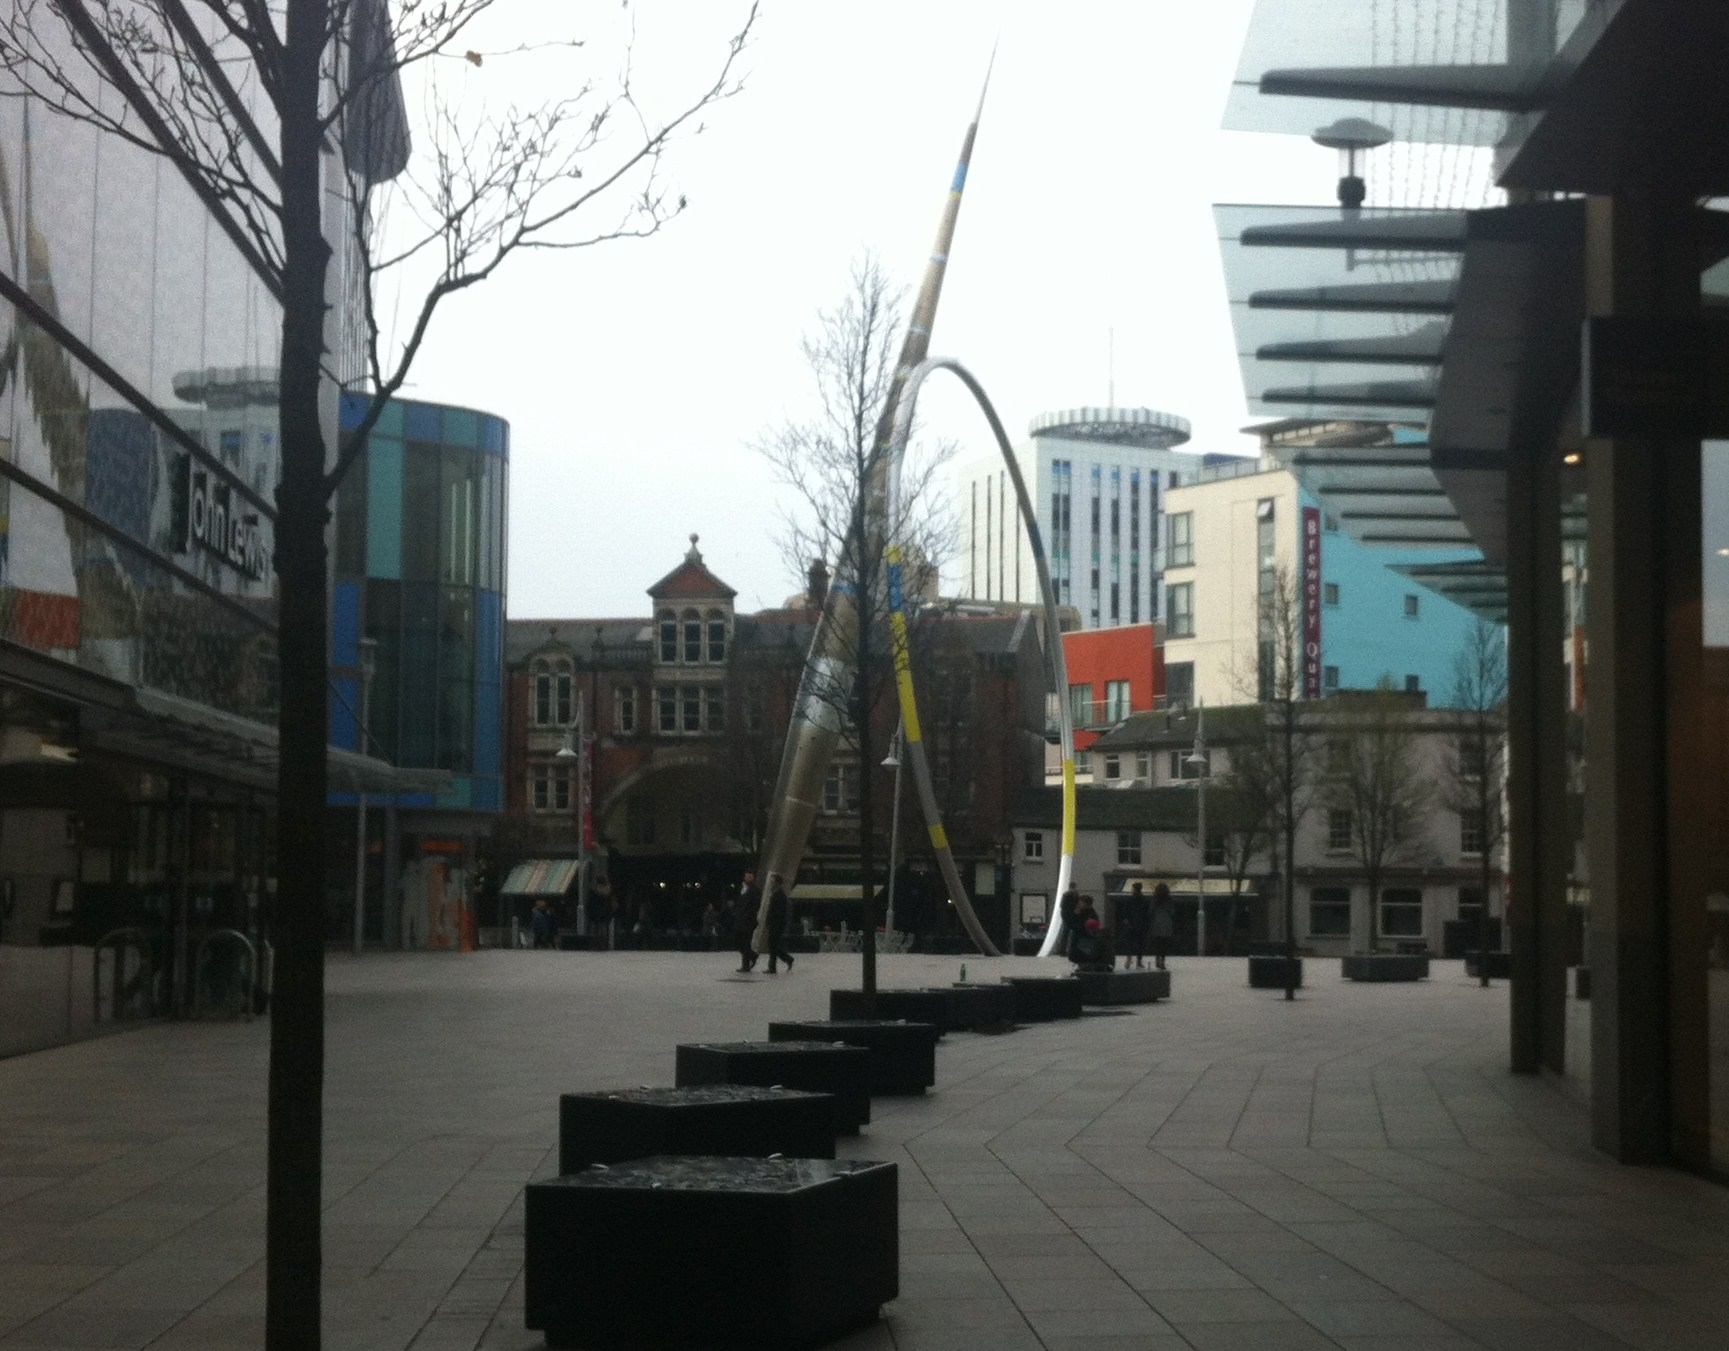 Iconic structure outside Cardiff Library